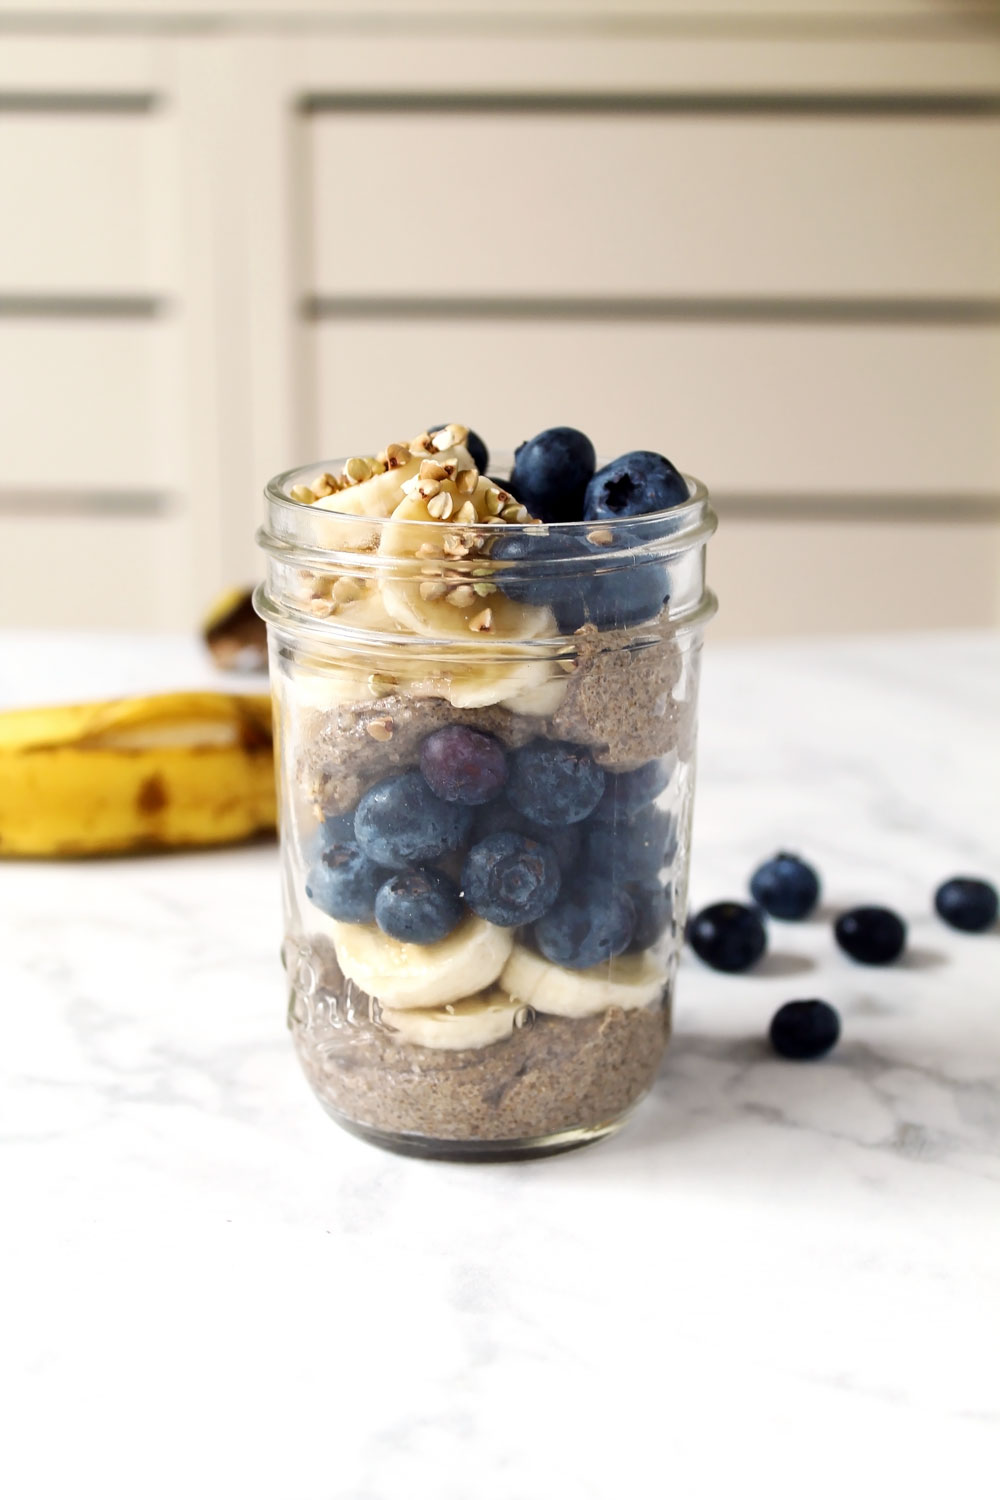 Blended Chia Pudding Parfait